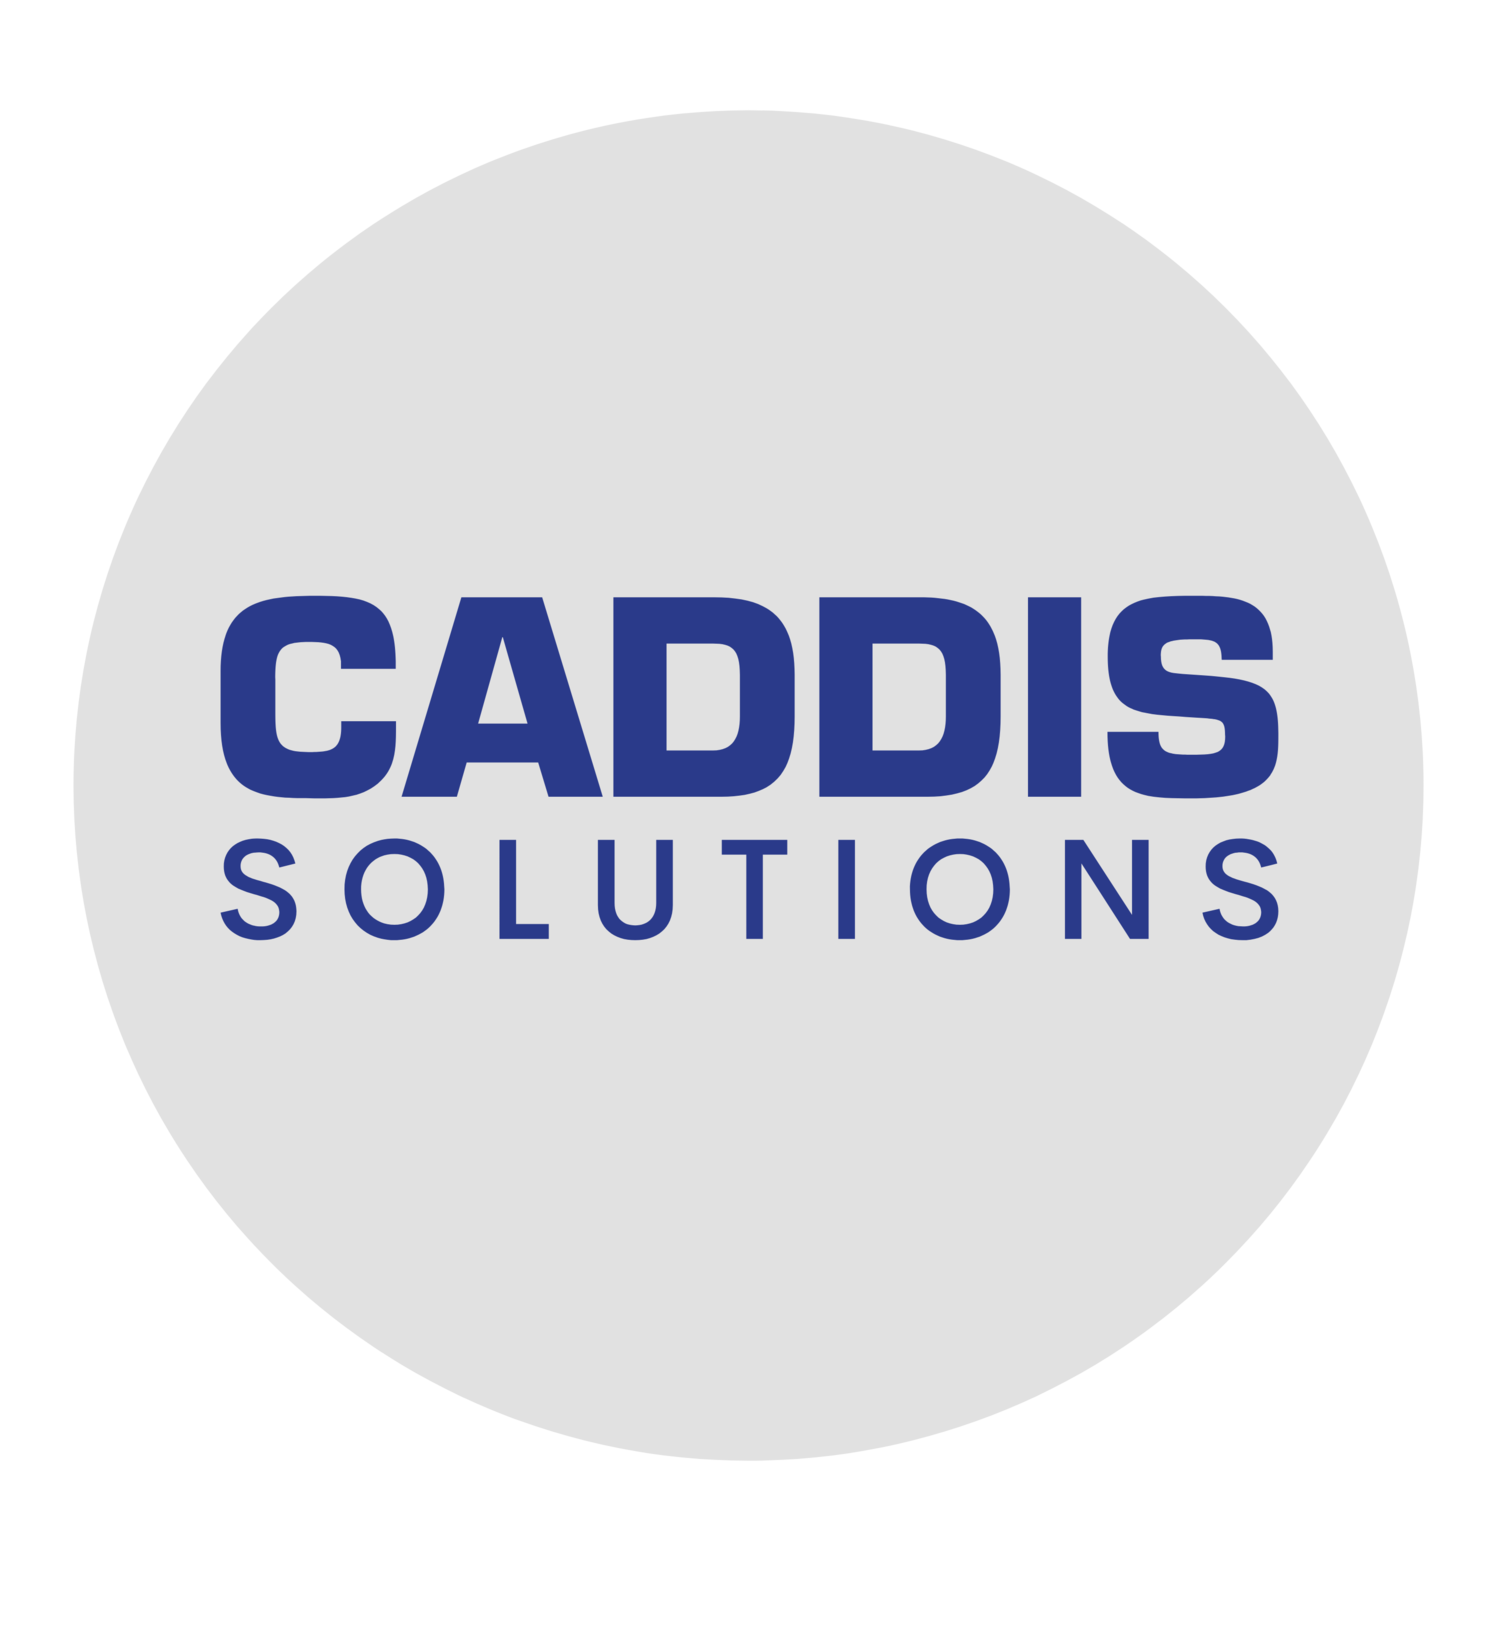 CADDIS Solutions